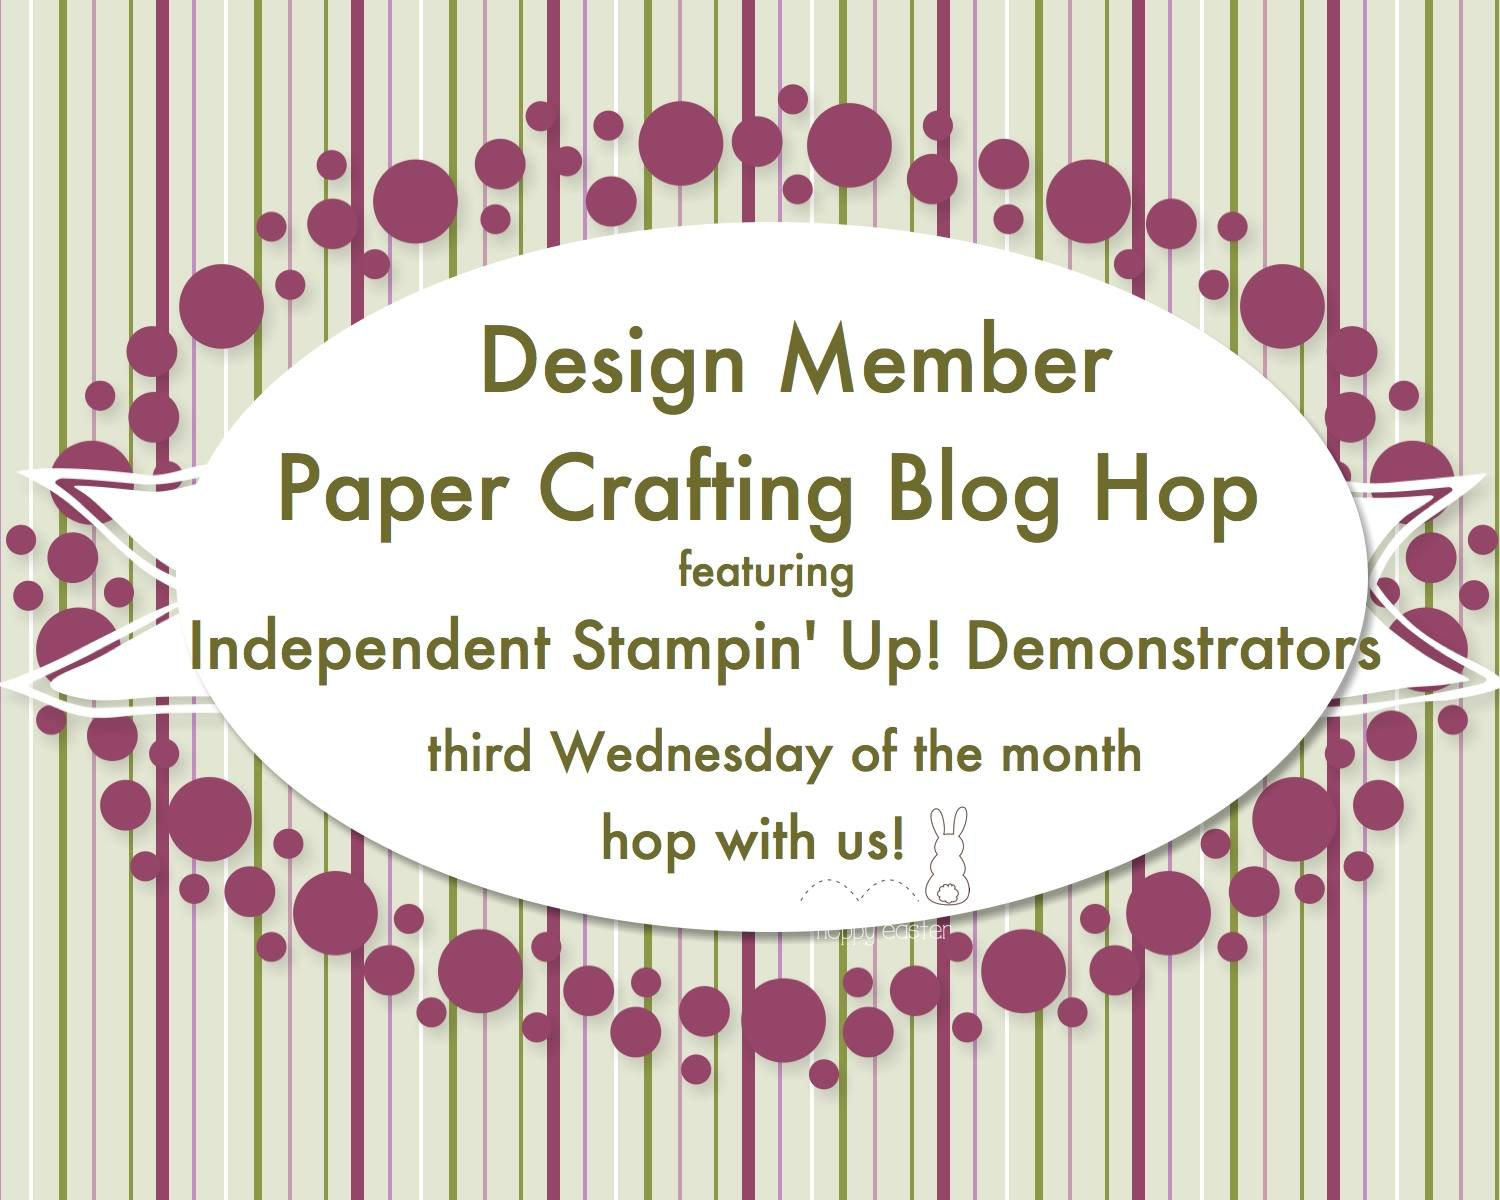 Paper Crafting Blog Hop Member